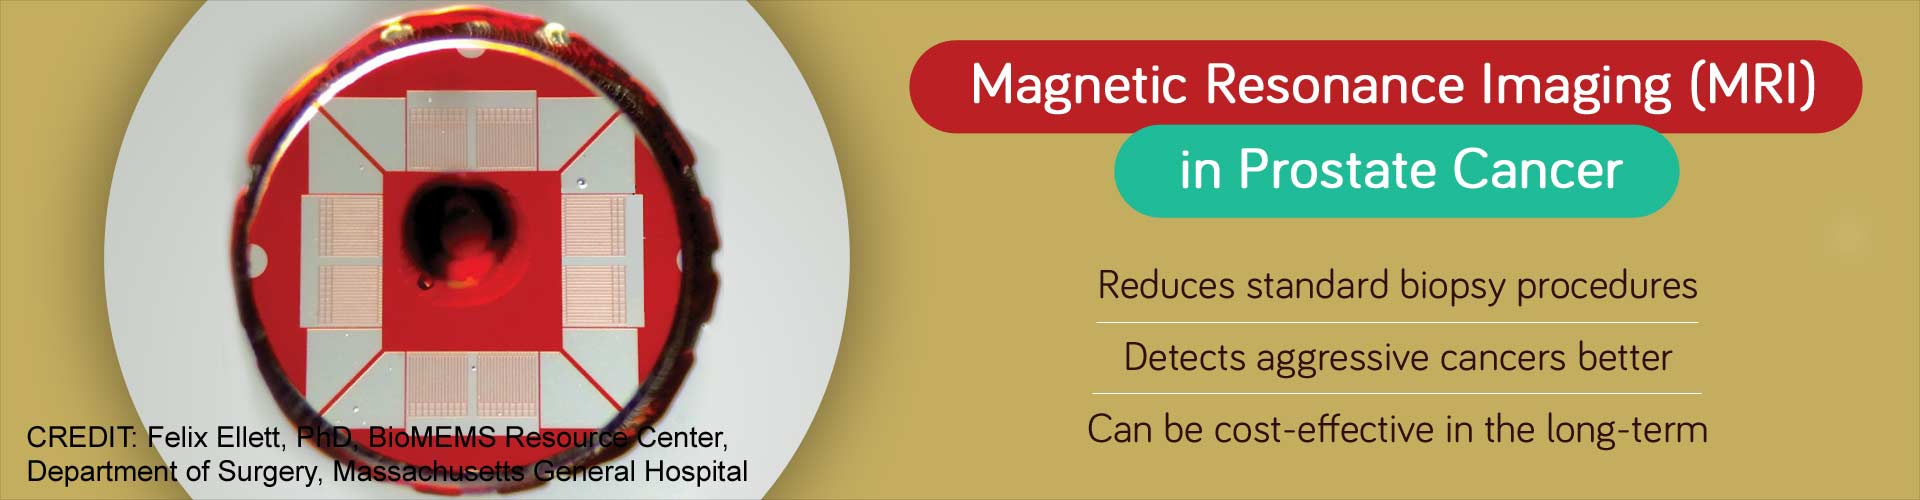 magnetic resonance imaging (MRI) in prostate cancer